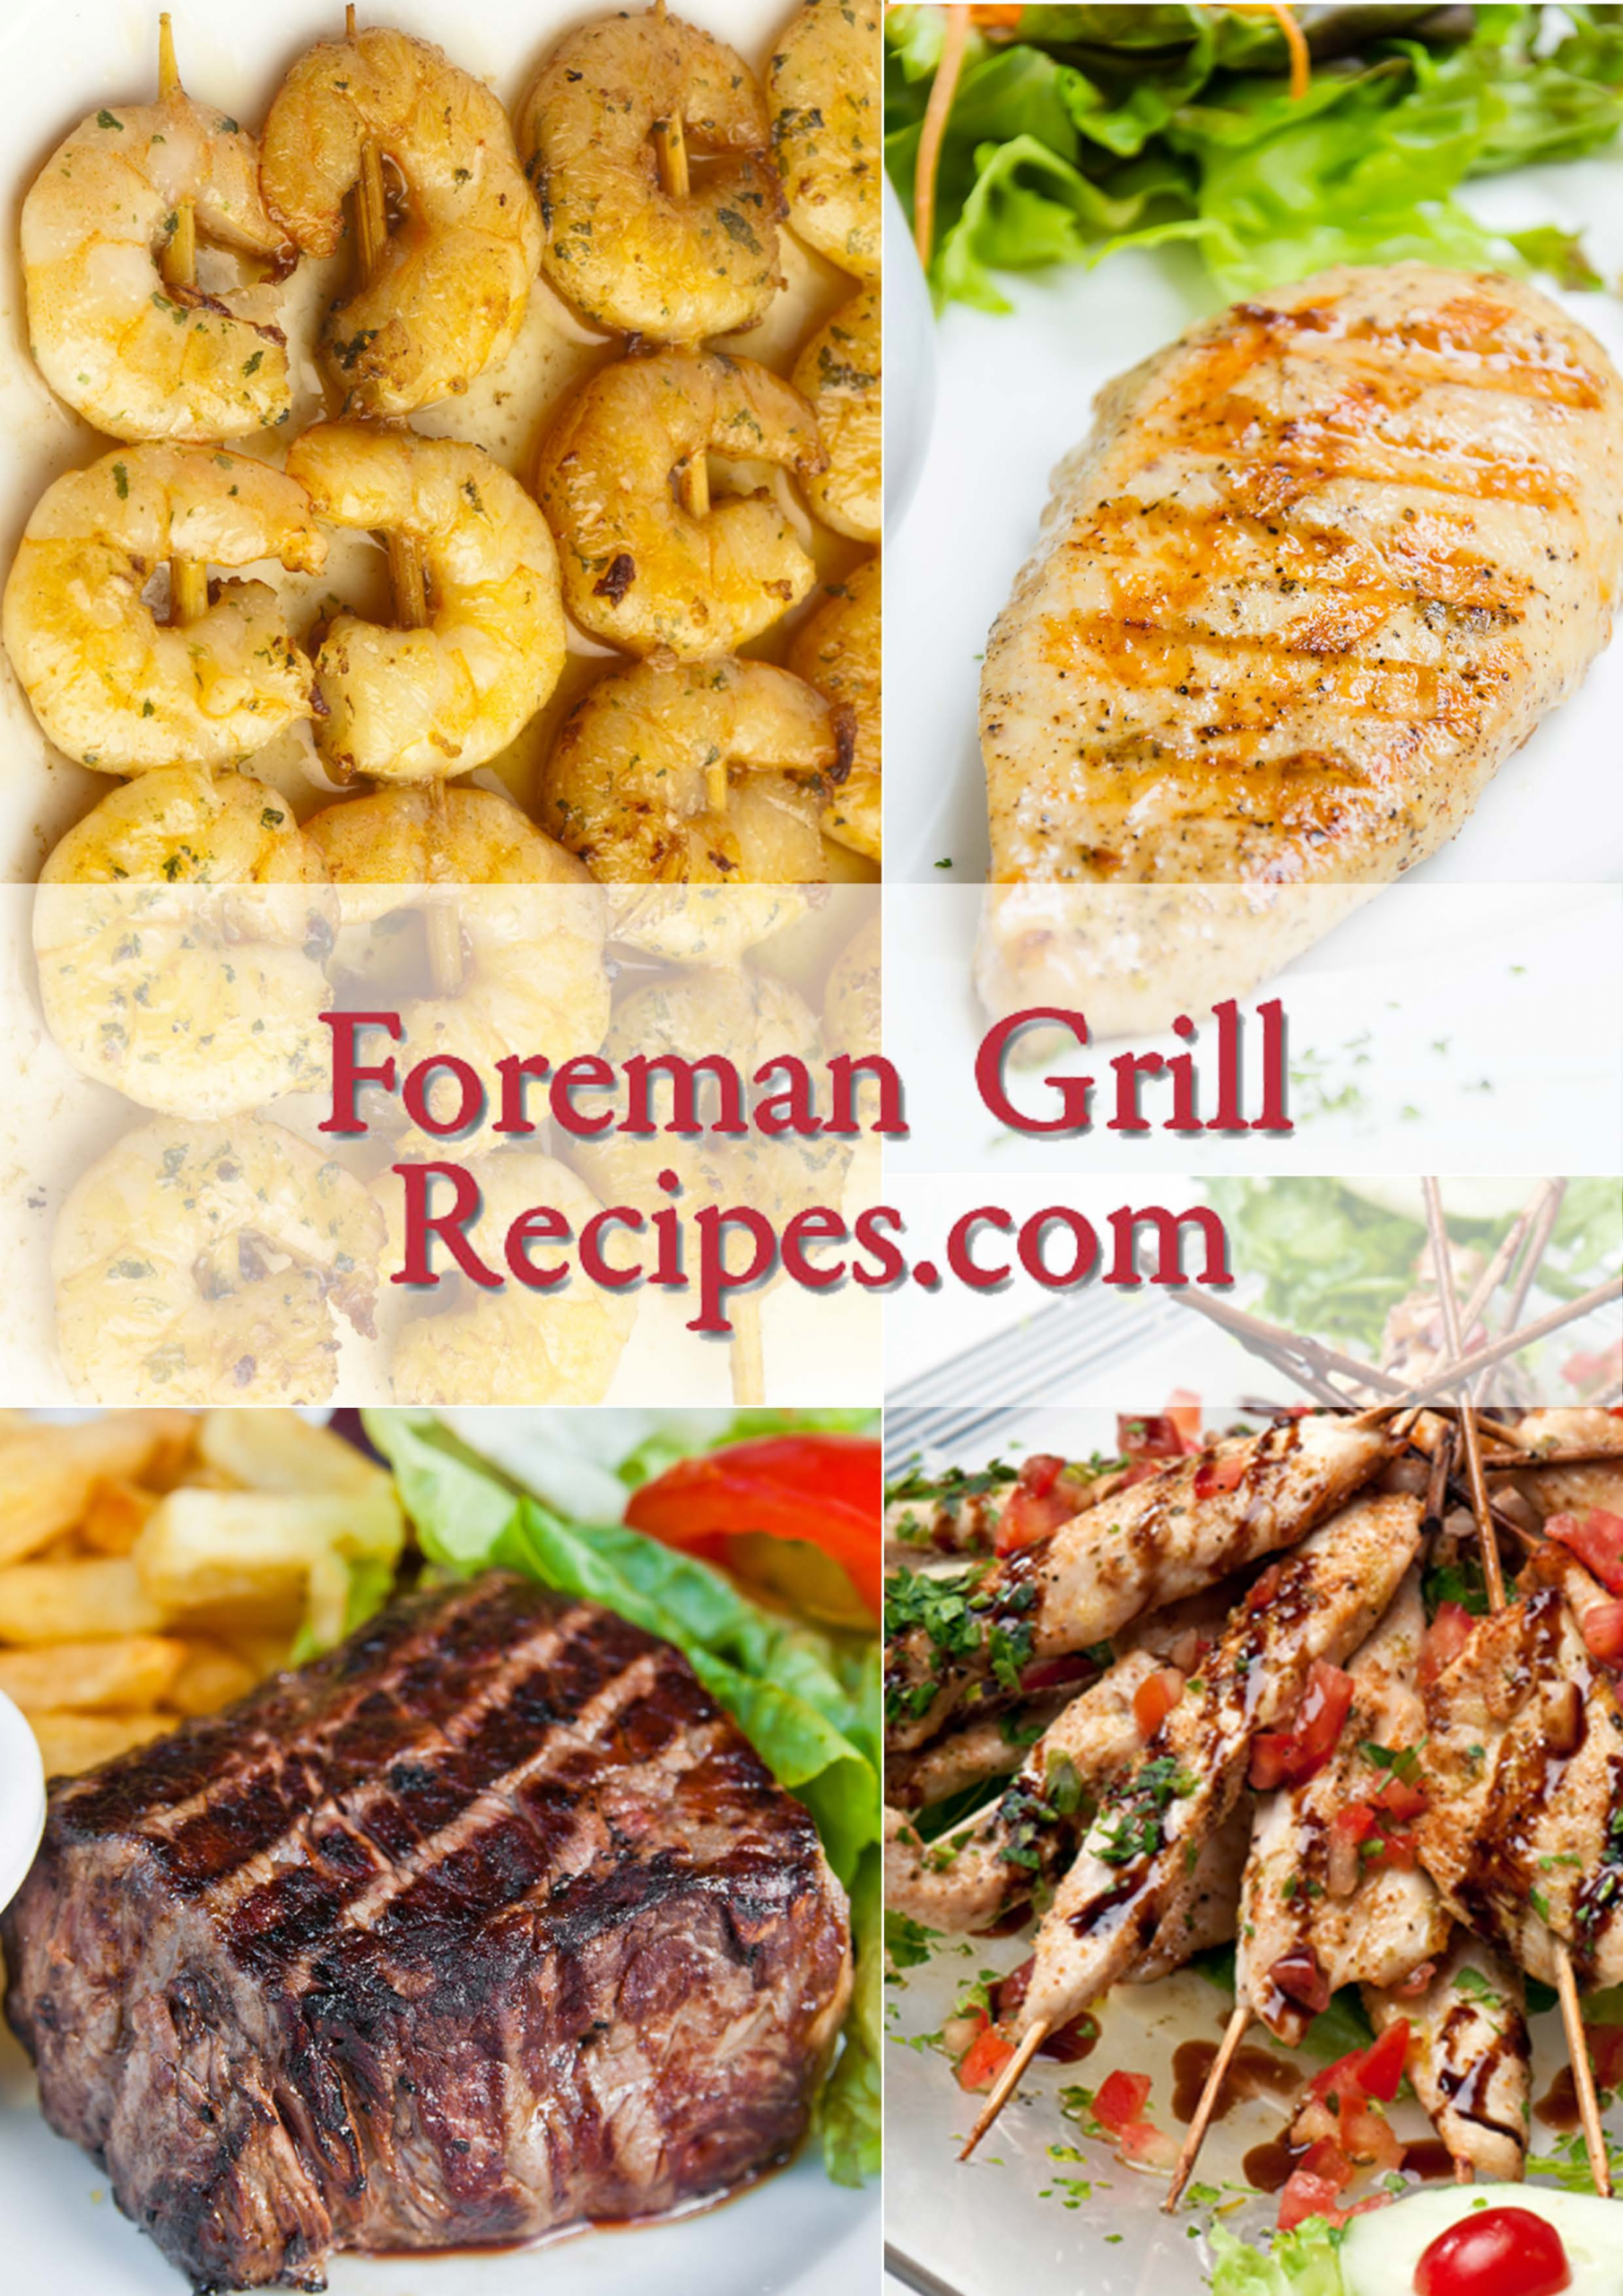 Foreman Grill Recipes - PDF - George Foreman Grill Recipes Chicken